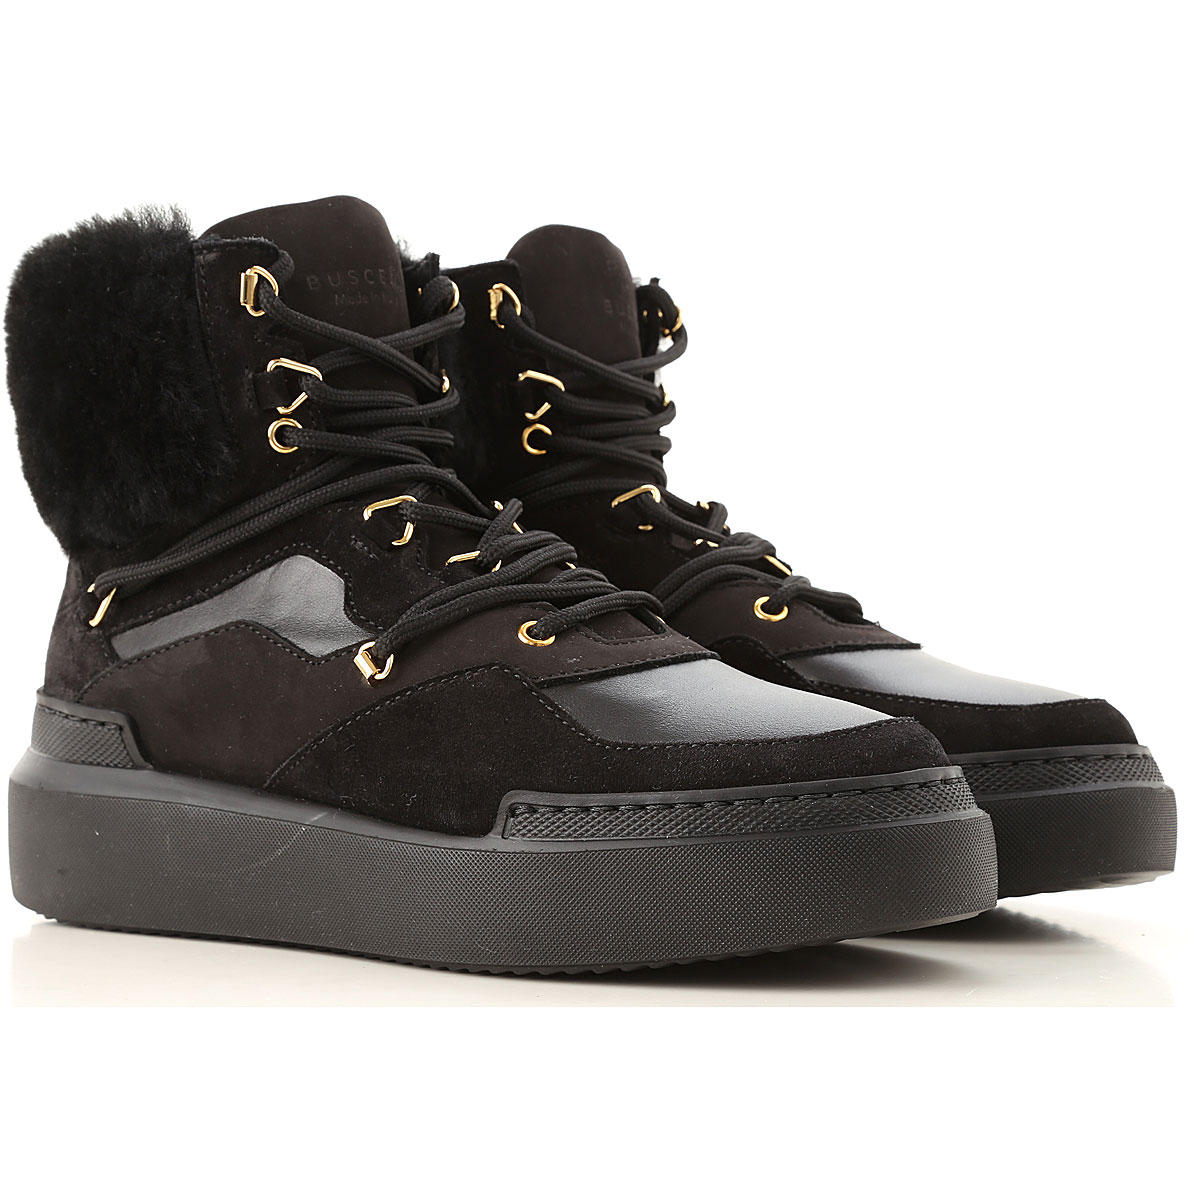 Image of Buscemi Sneakers for Women, Black, Leather, 2017, 10 5 6 7 8 9